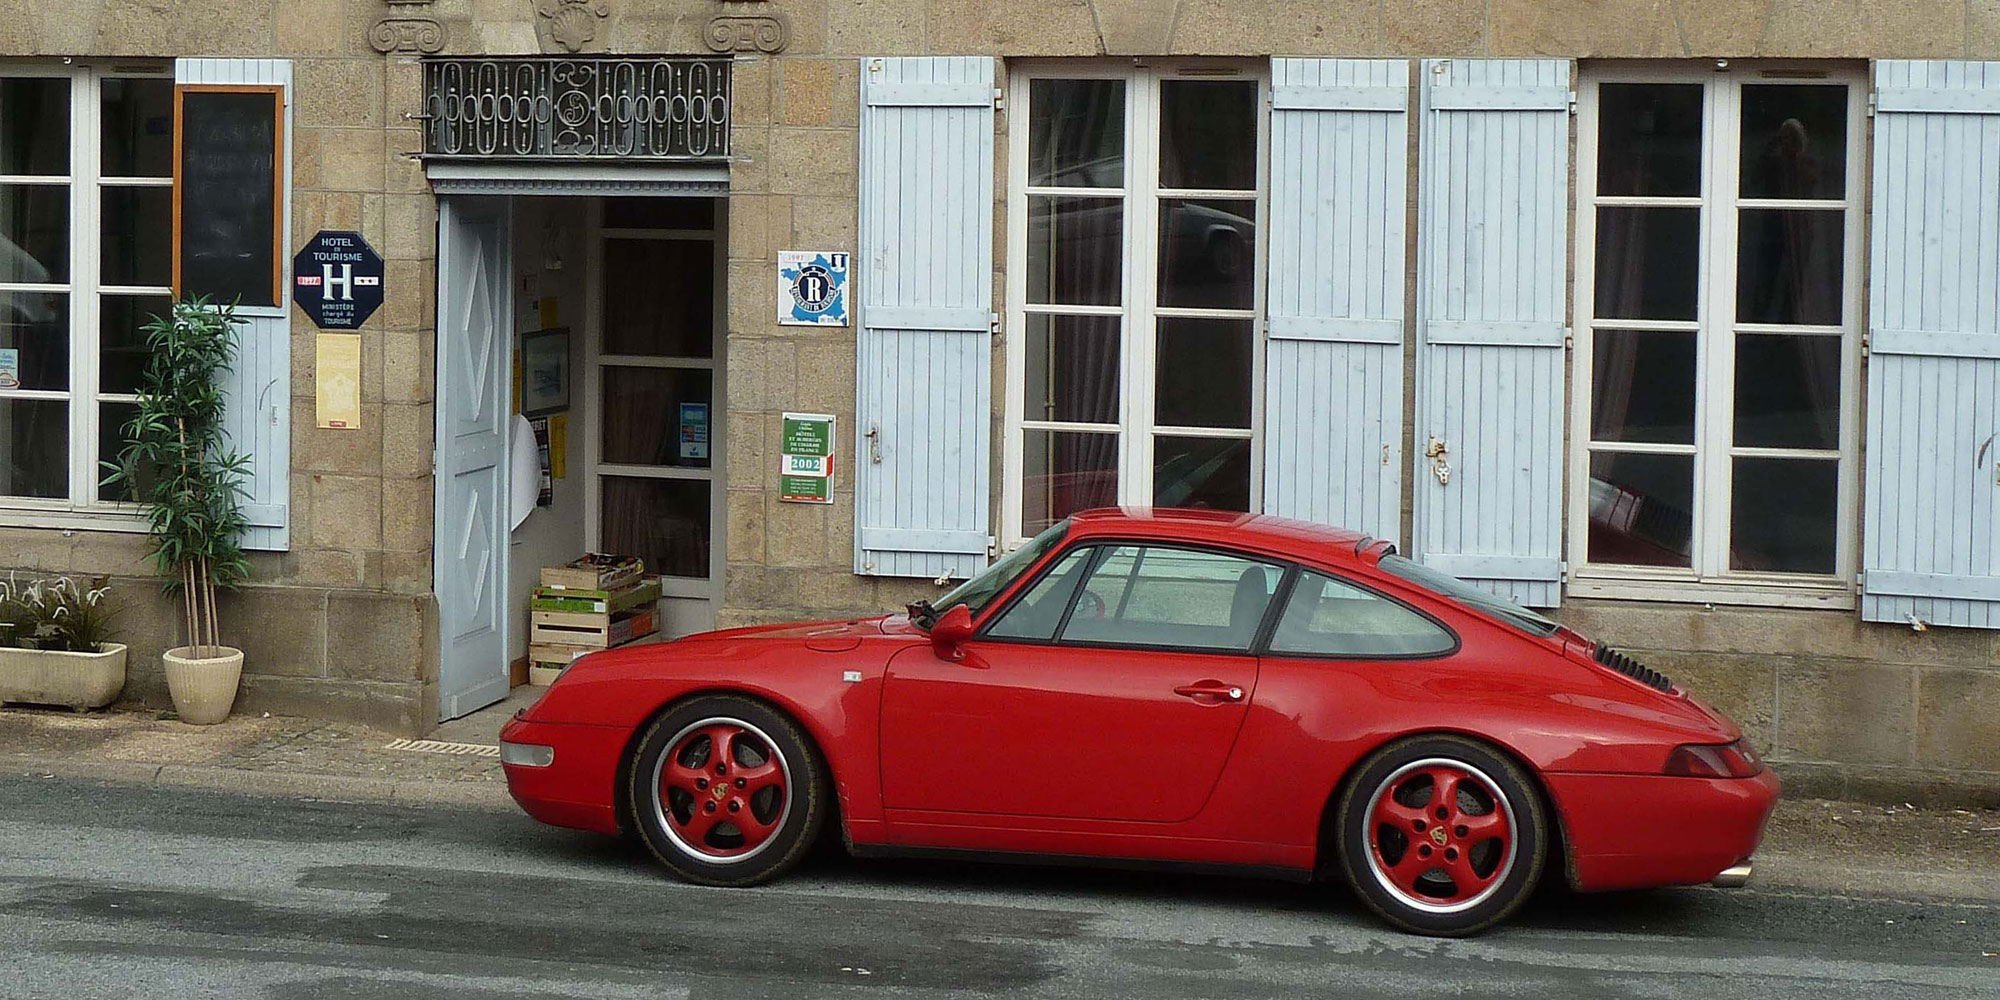 Porsche outside French hotel